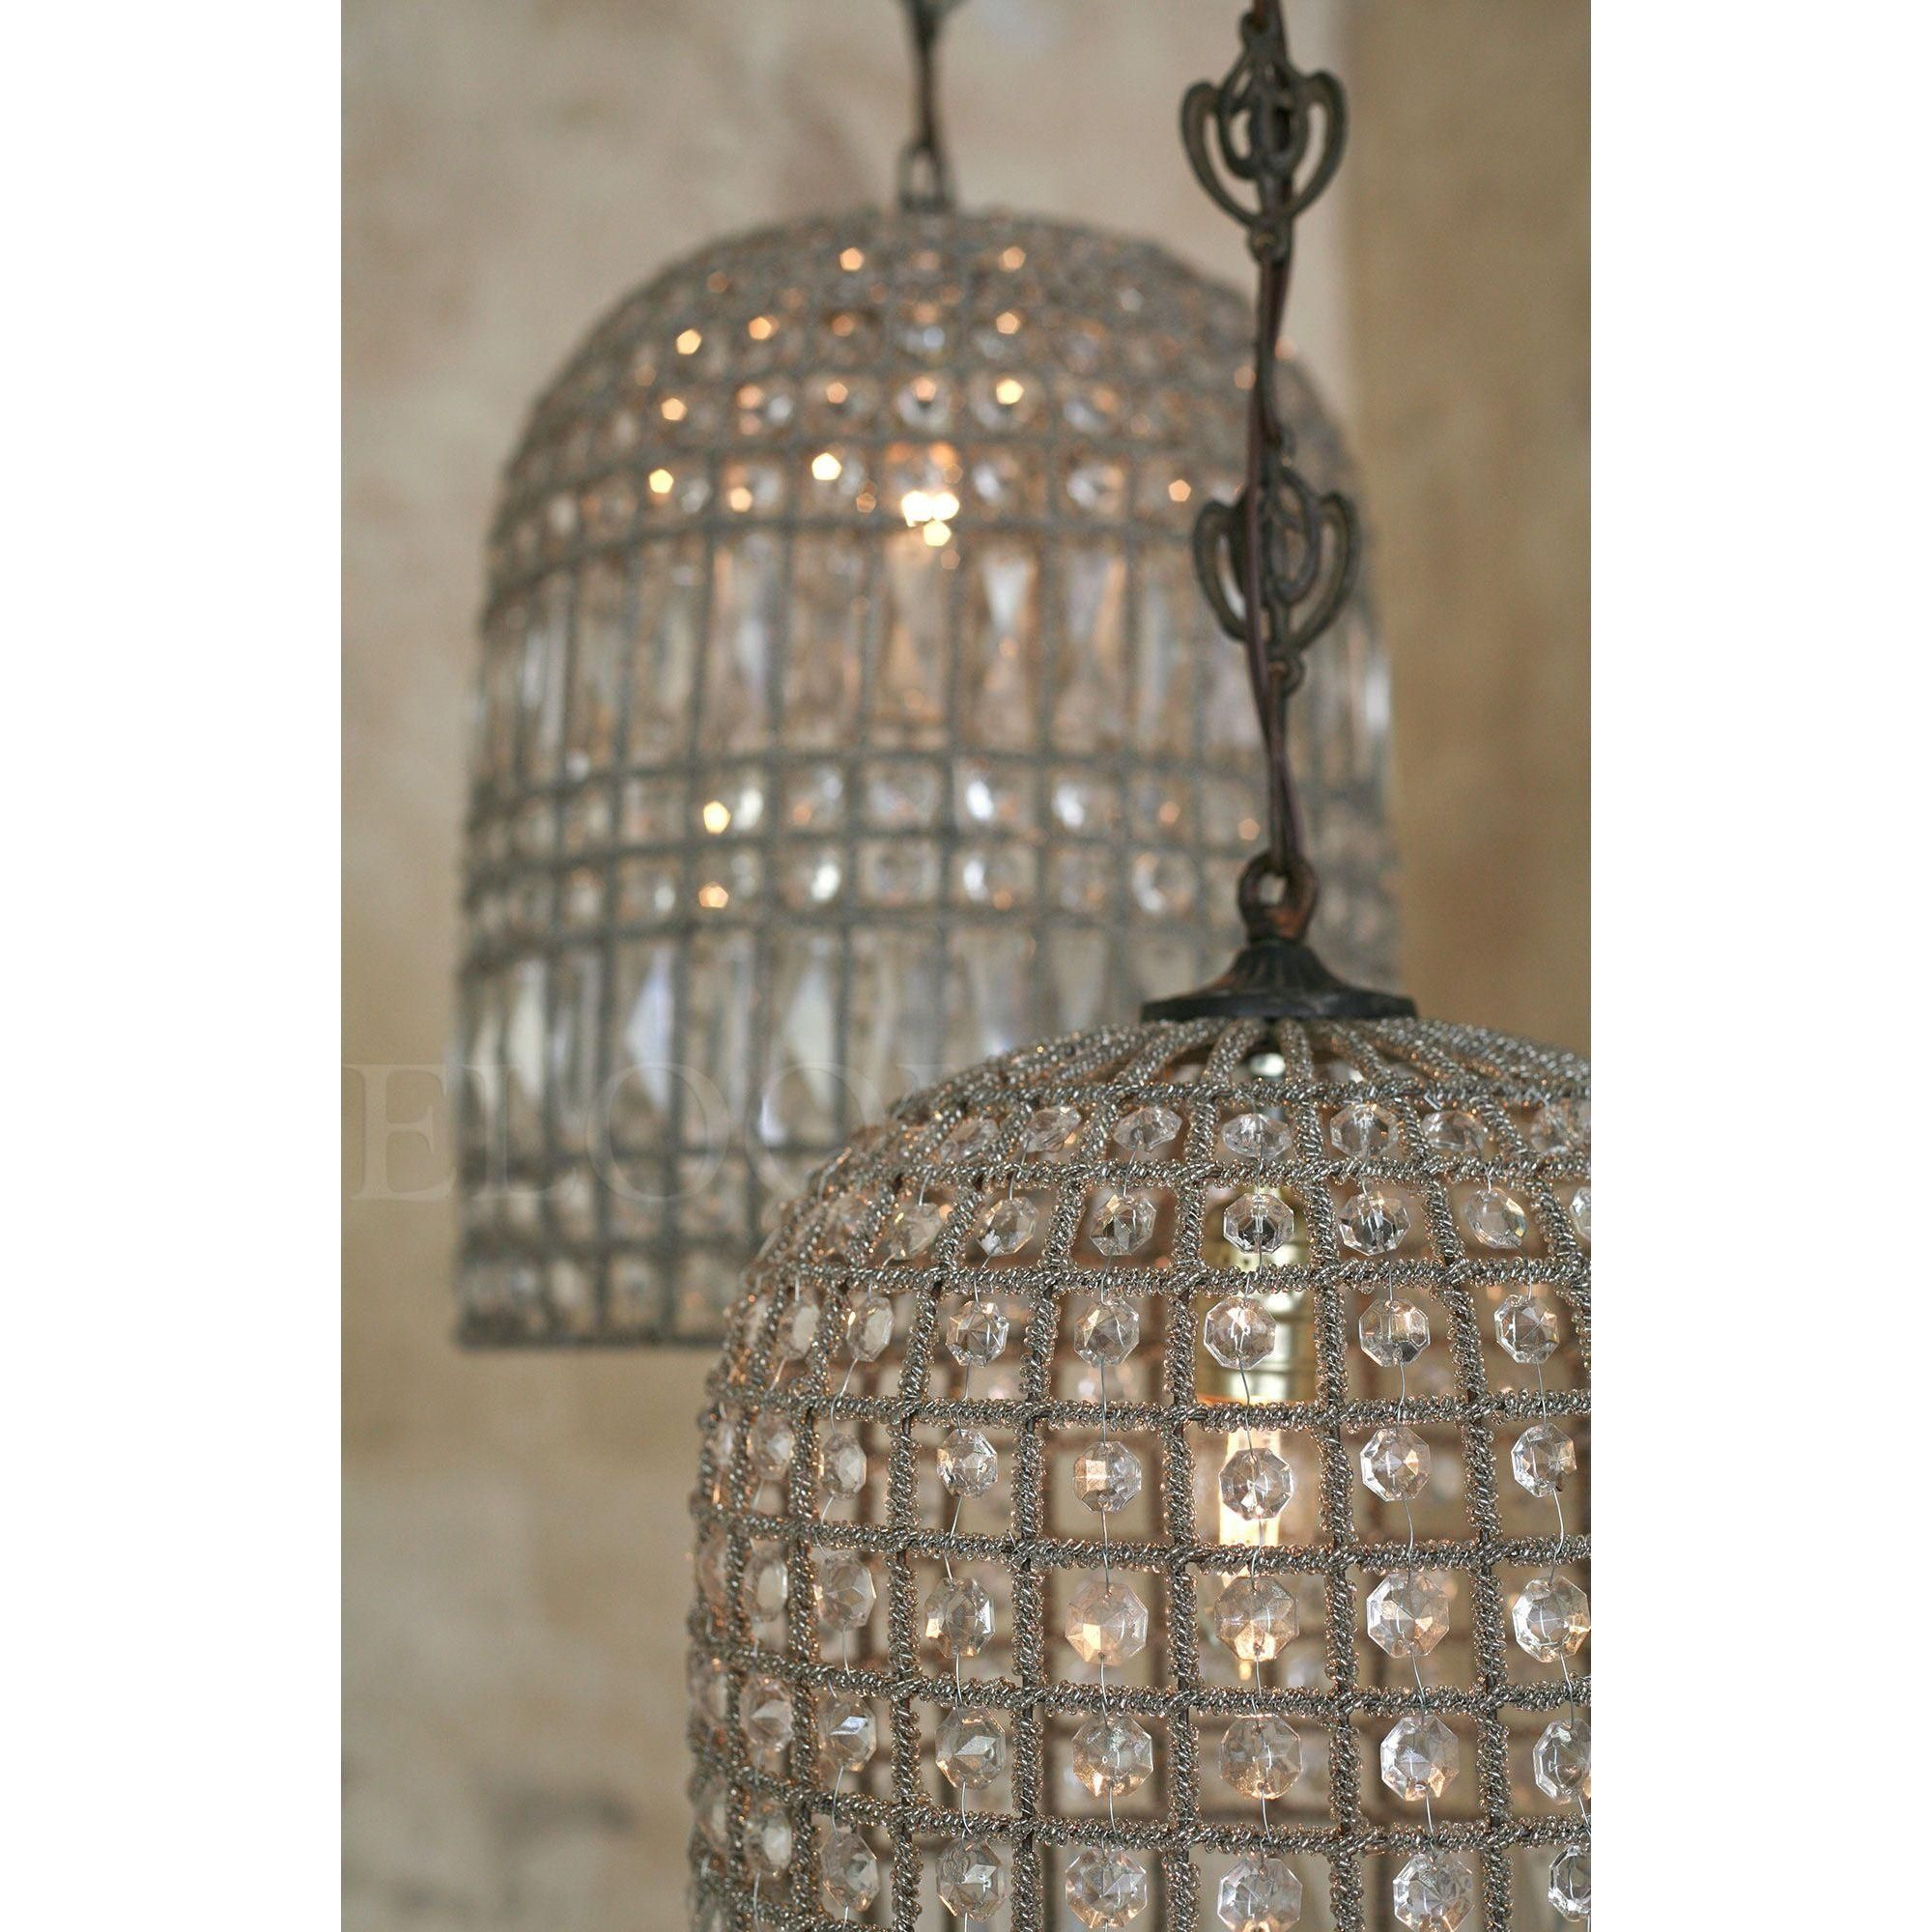 lampshade crystal greenwoods ideas lamp beforeafter home lamps makeover decor little diy shade collage